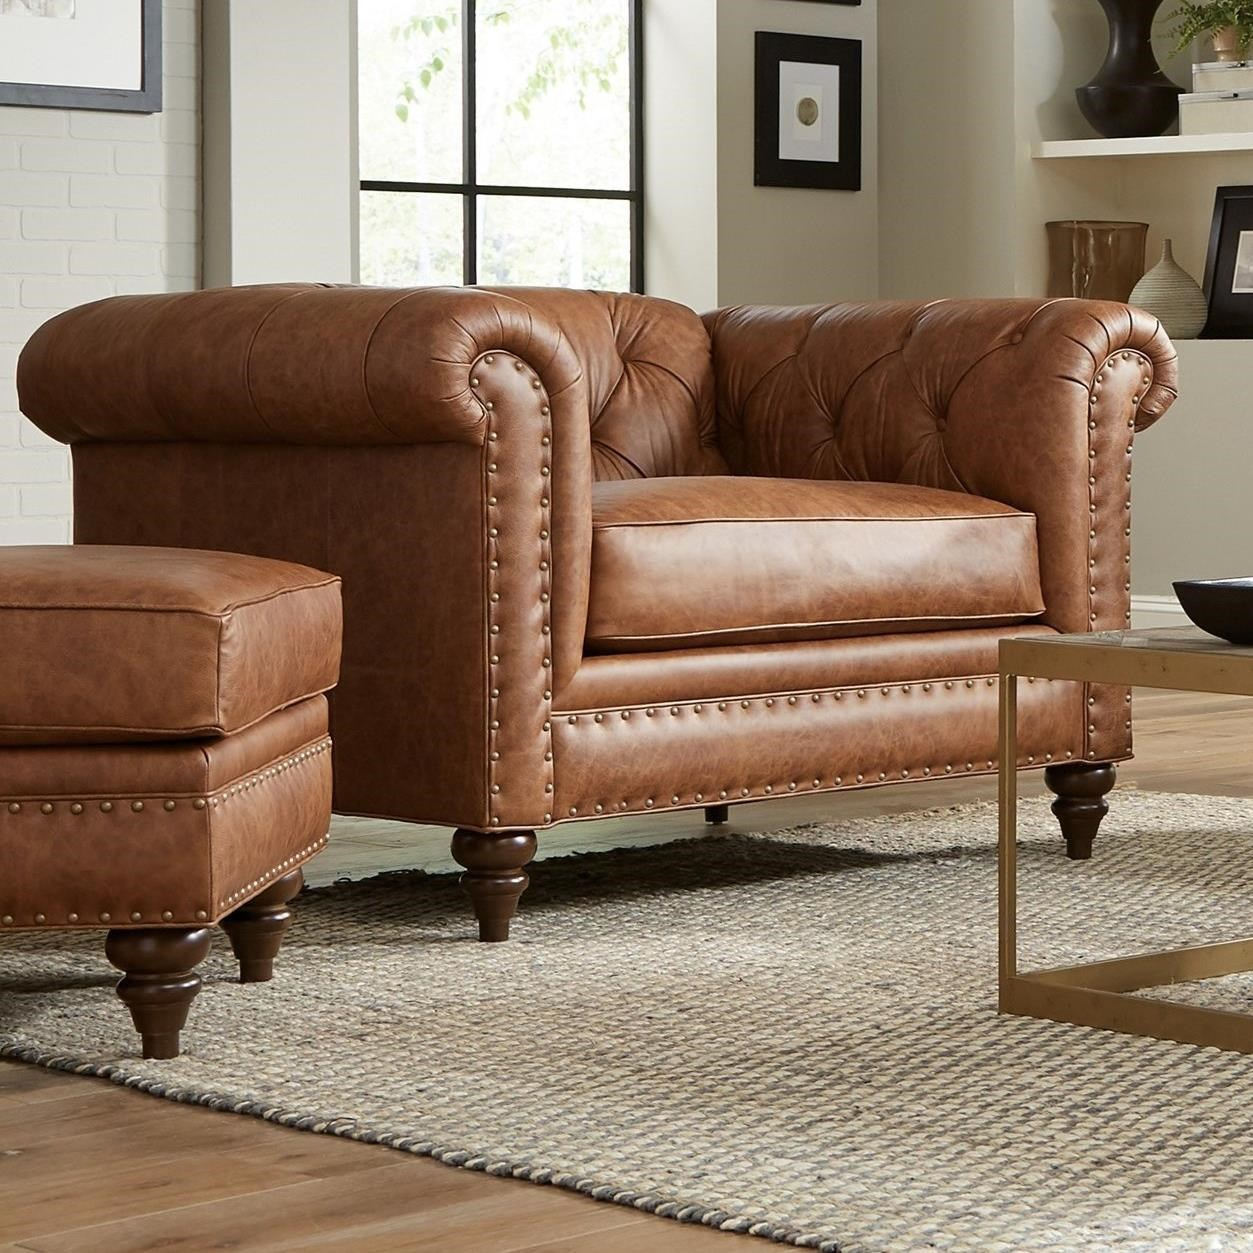 Craftmaster L743150 Traditional Leather Chesterfield